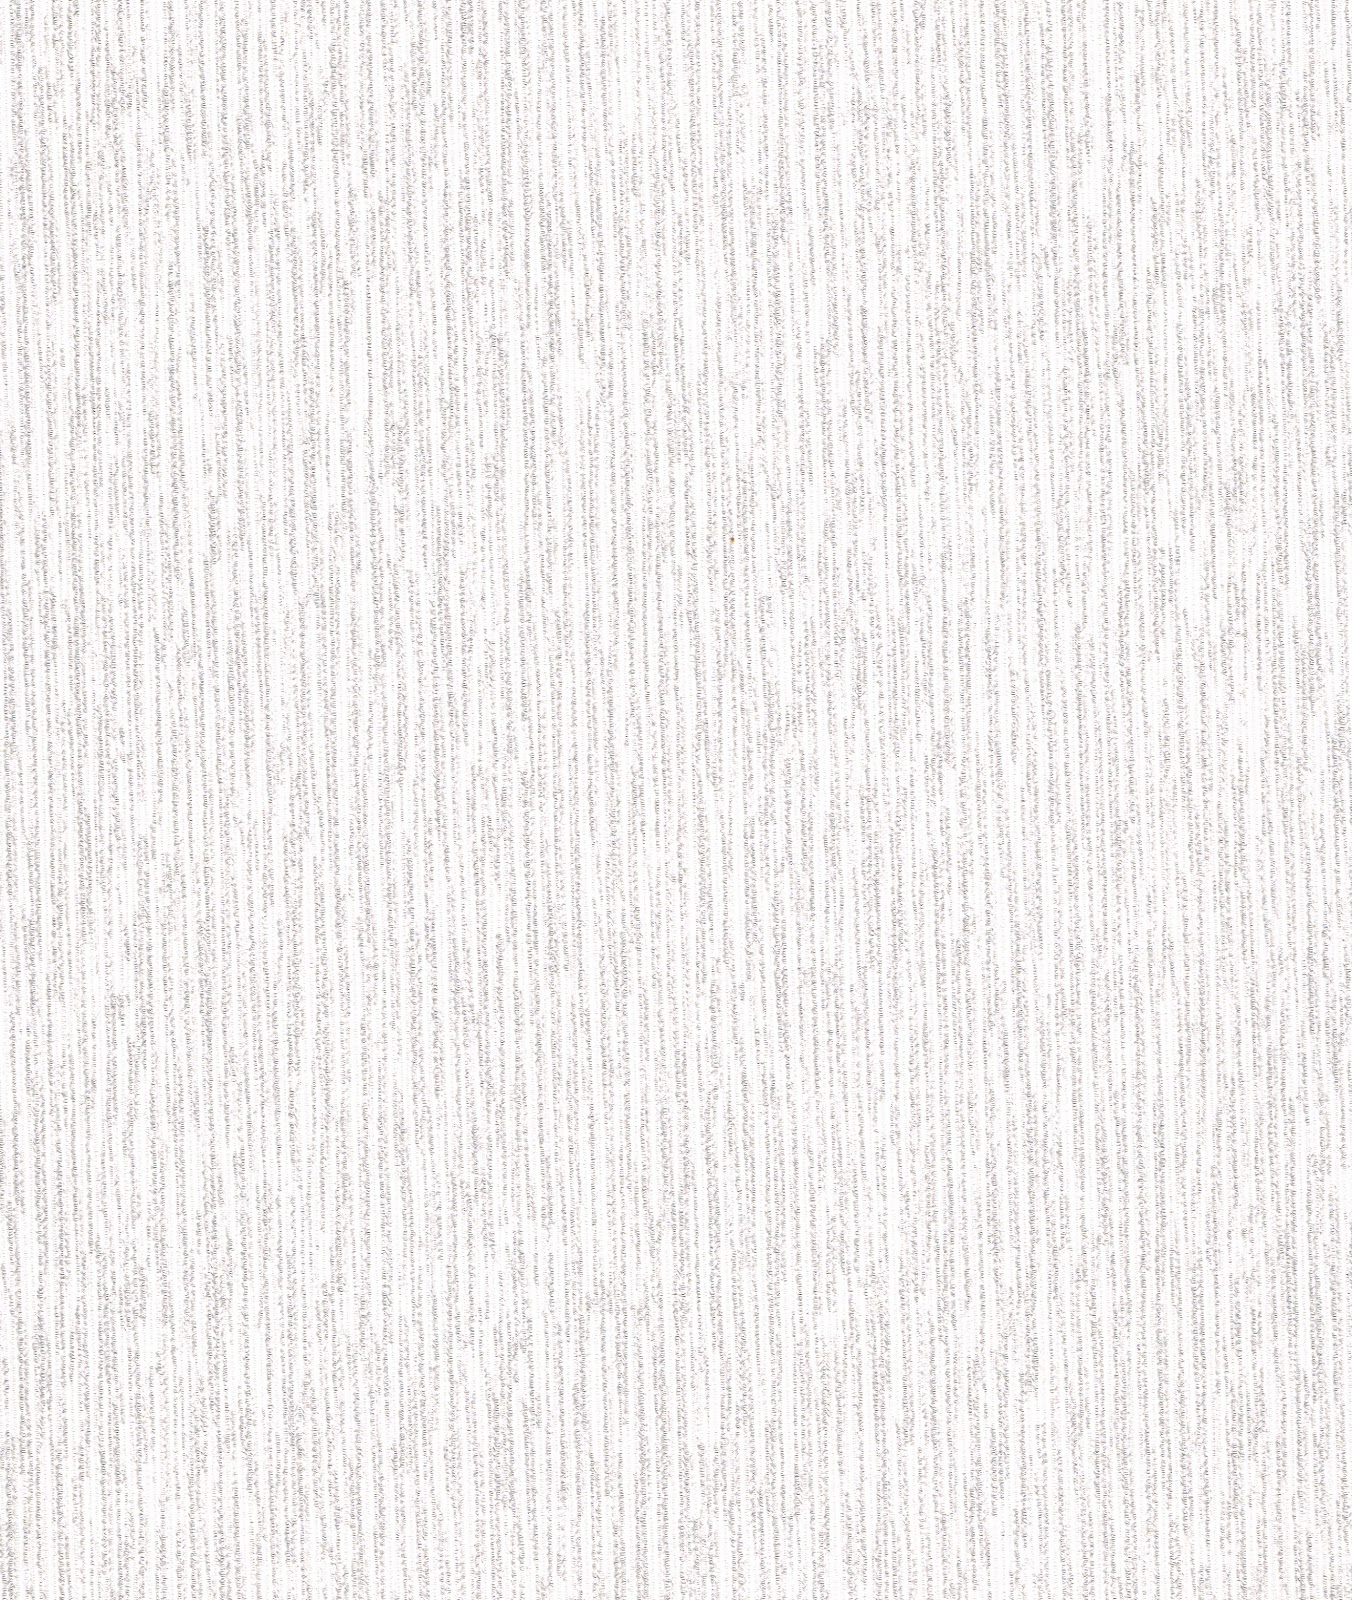 White Grasscloth Wallpaper: Vinyl Wall Coverings 2017